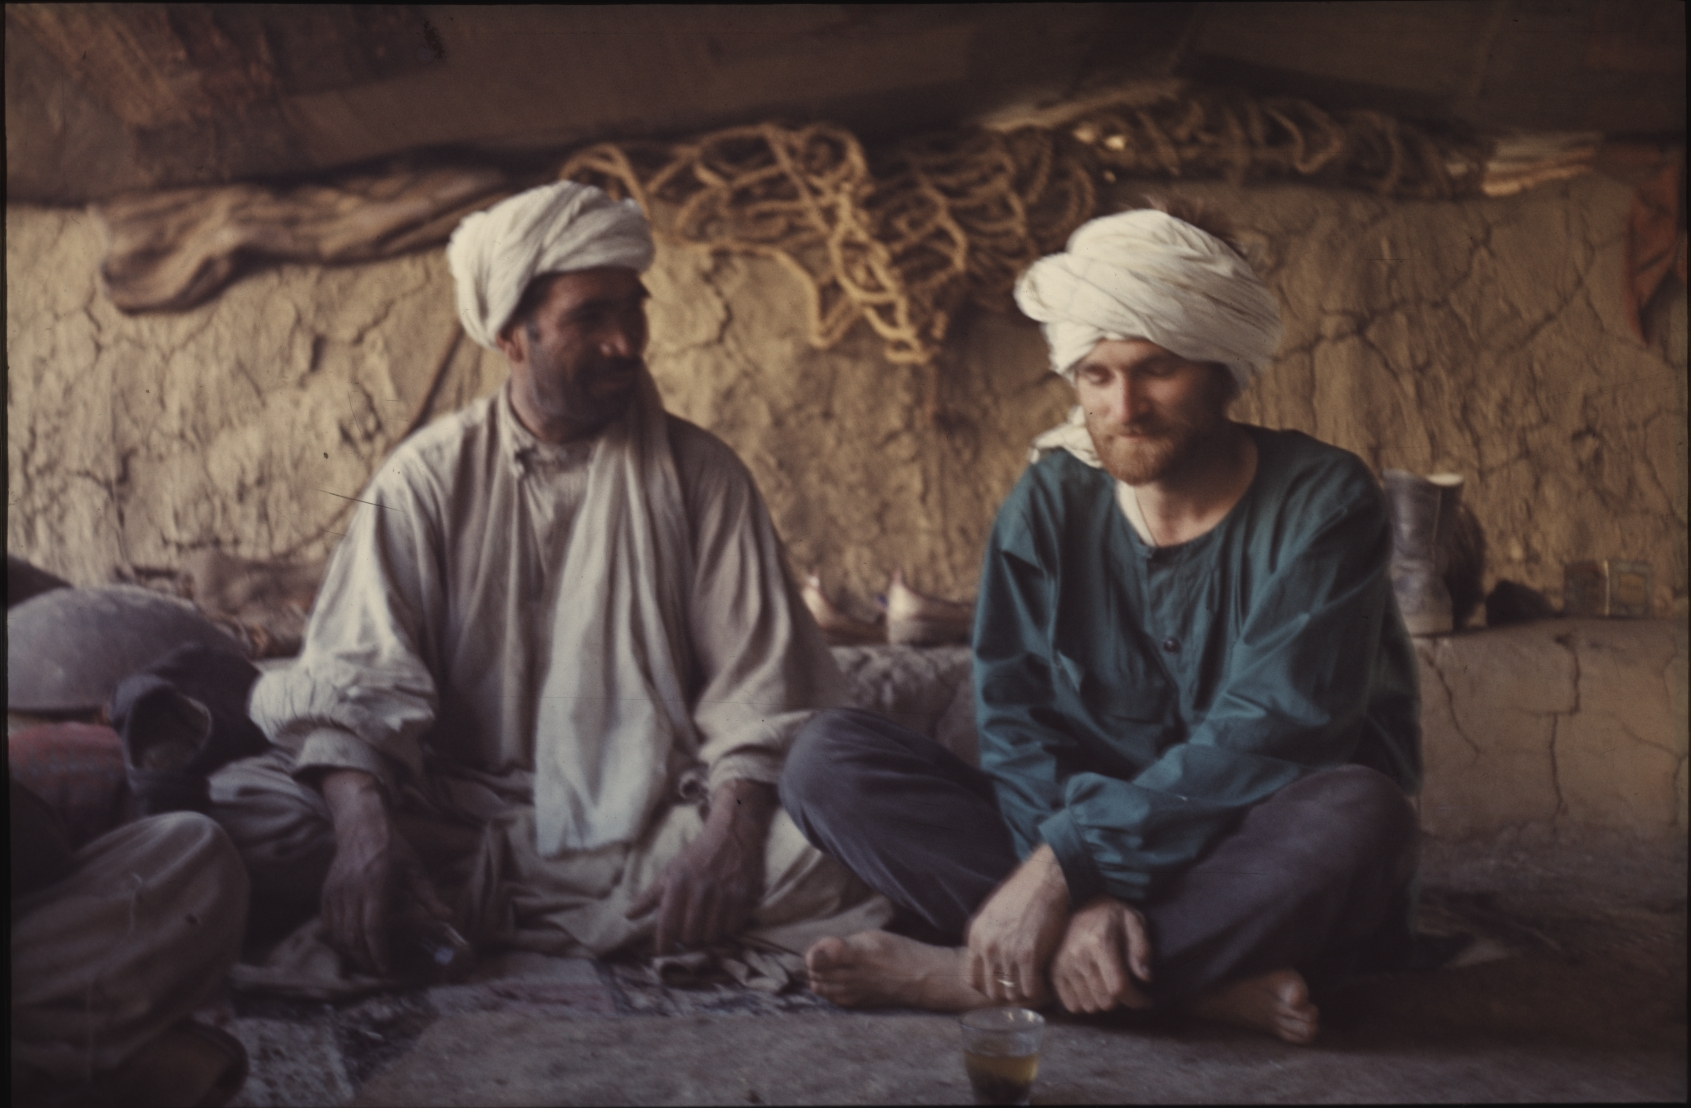 Jean having tea with his Afghan host. Photo: Daniella Bourgeois. 1969